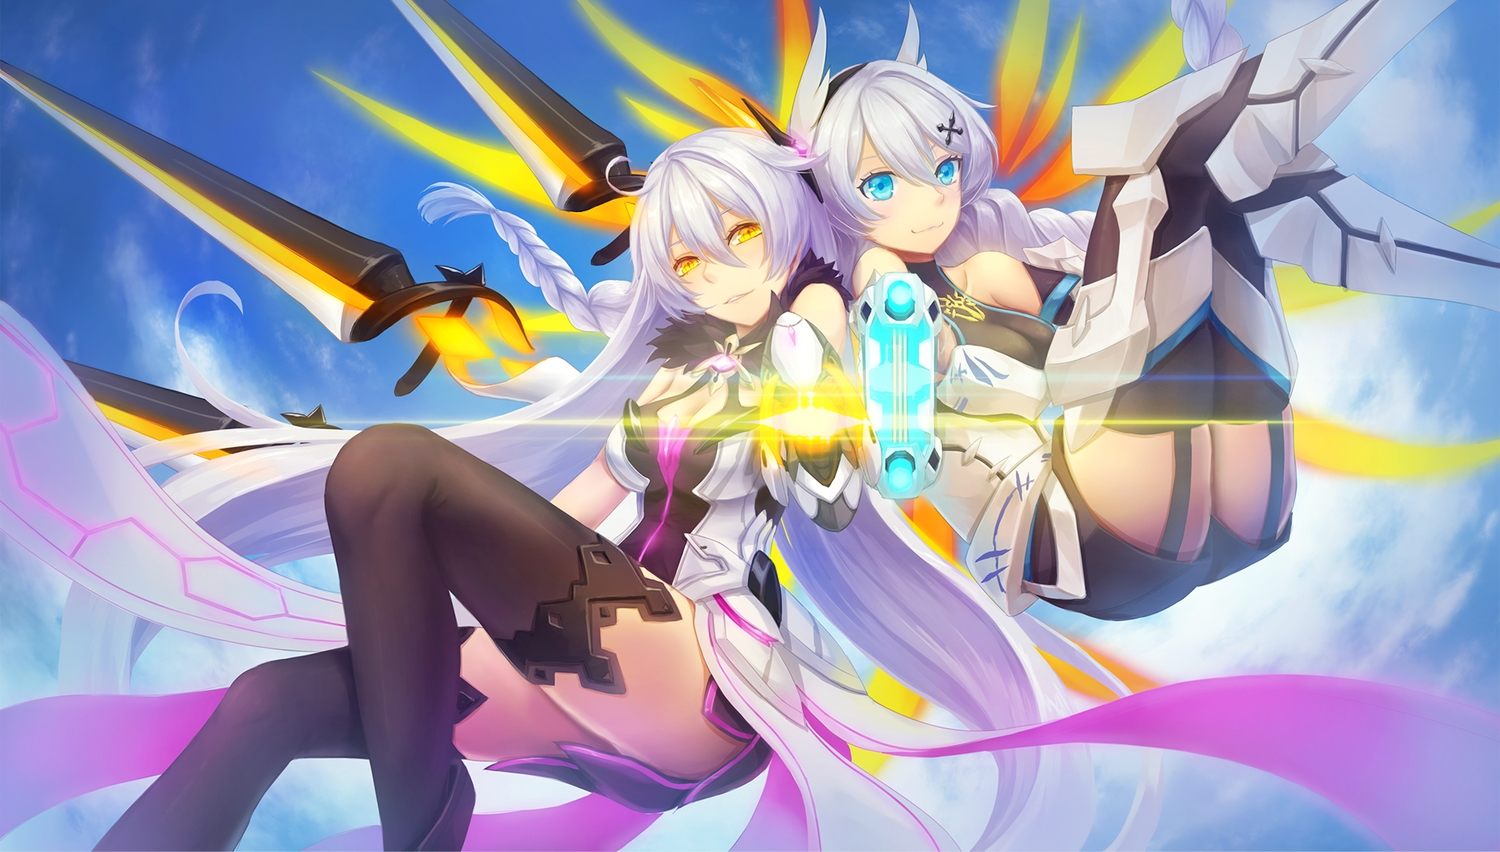 2girls aqua_eyes armor braids breasts cleavage clouds dress garter_belt gray_hair gun honkai_impact kallen_kaslana kiana_kaslana long_hair shorts sky thighhighs ulquiorra0 weapon yellow_eyes